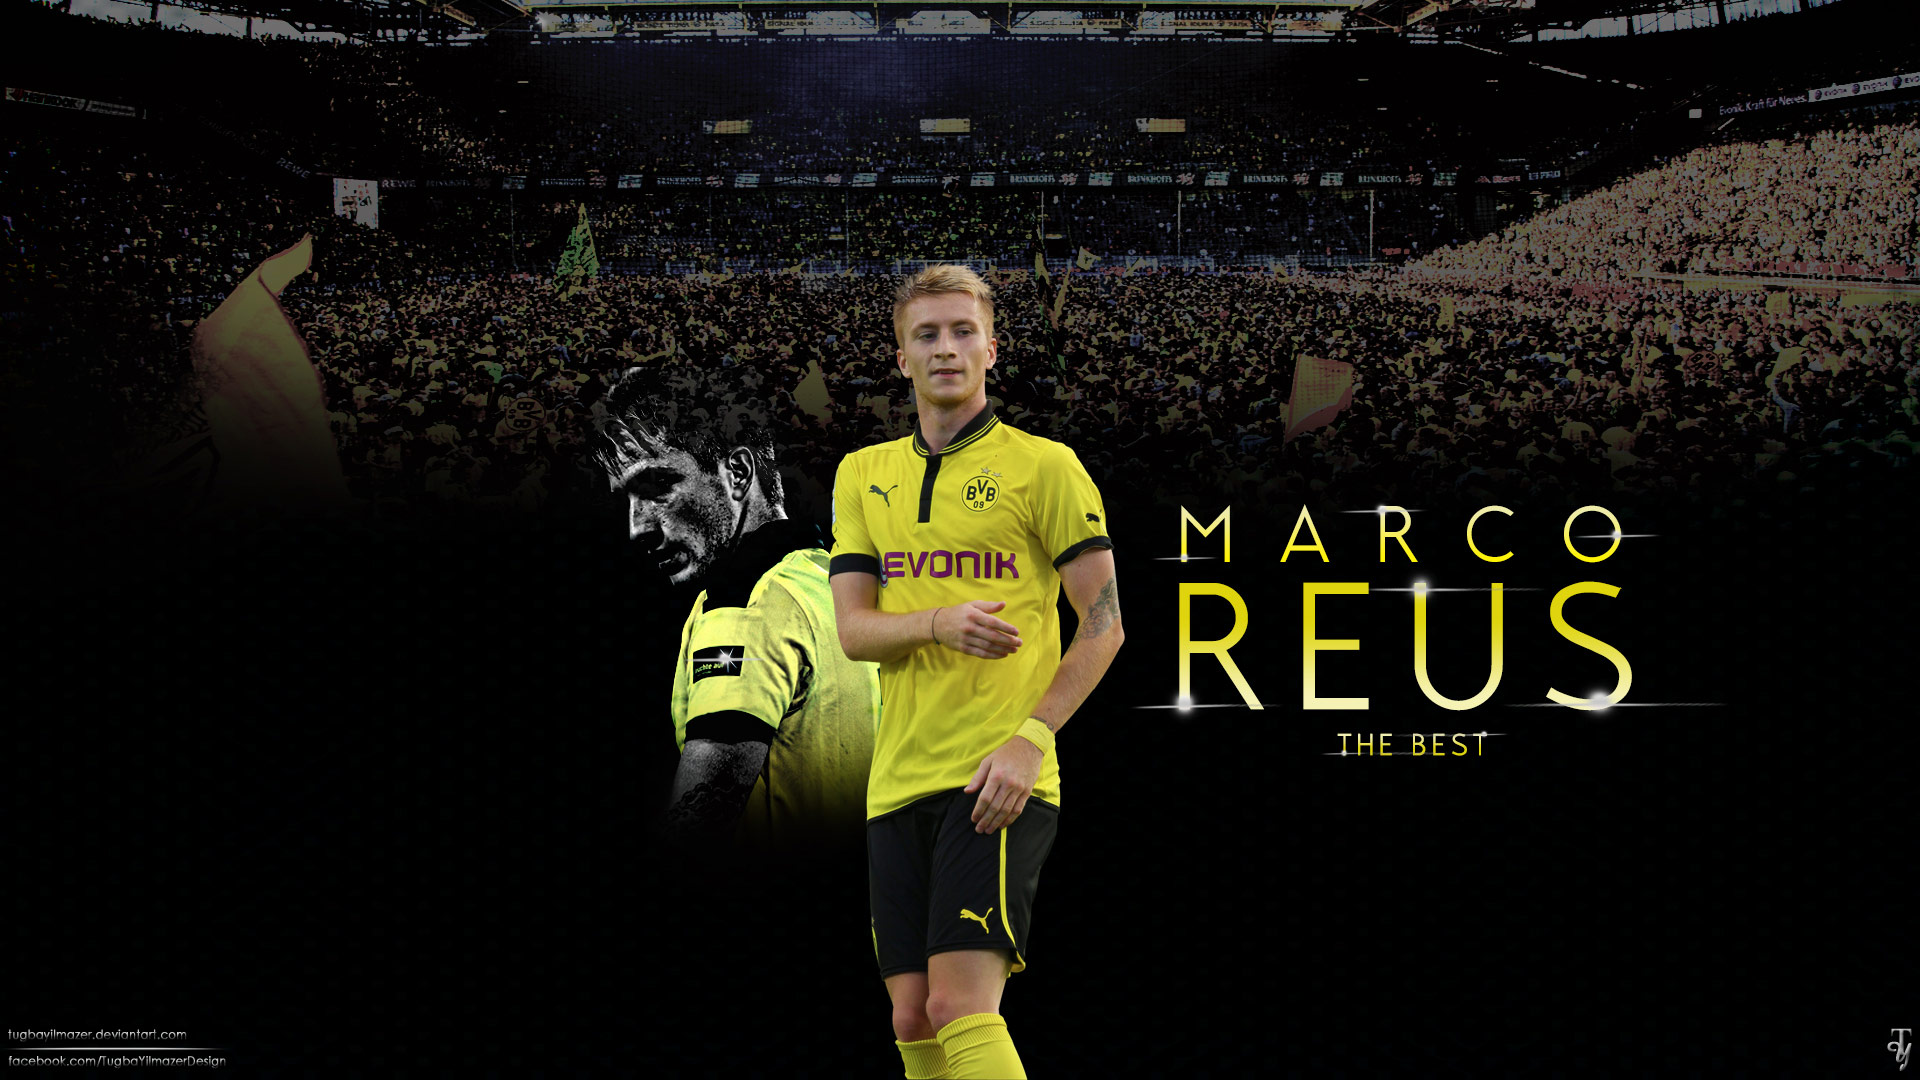 Sport Wallpapers Hd Game Images Players Desktop Images: Marco Reus Wallpapers High Resolution And Quality